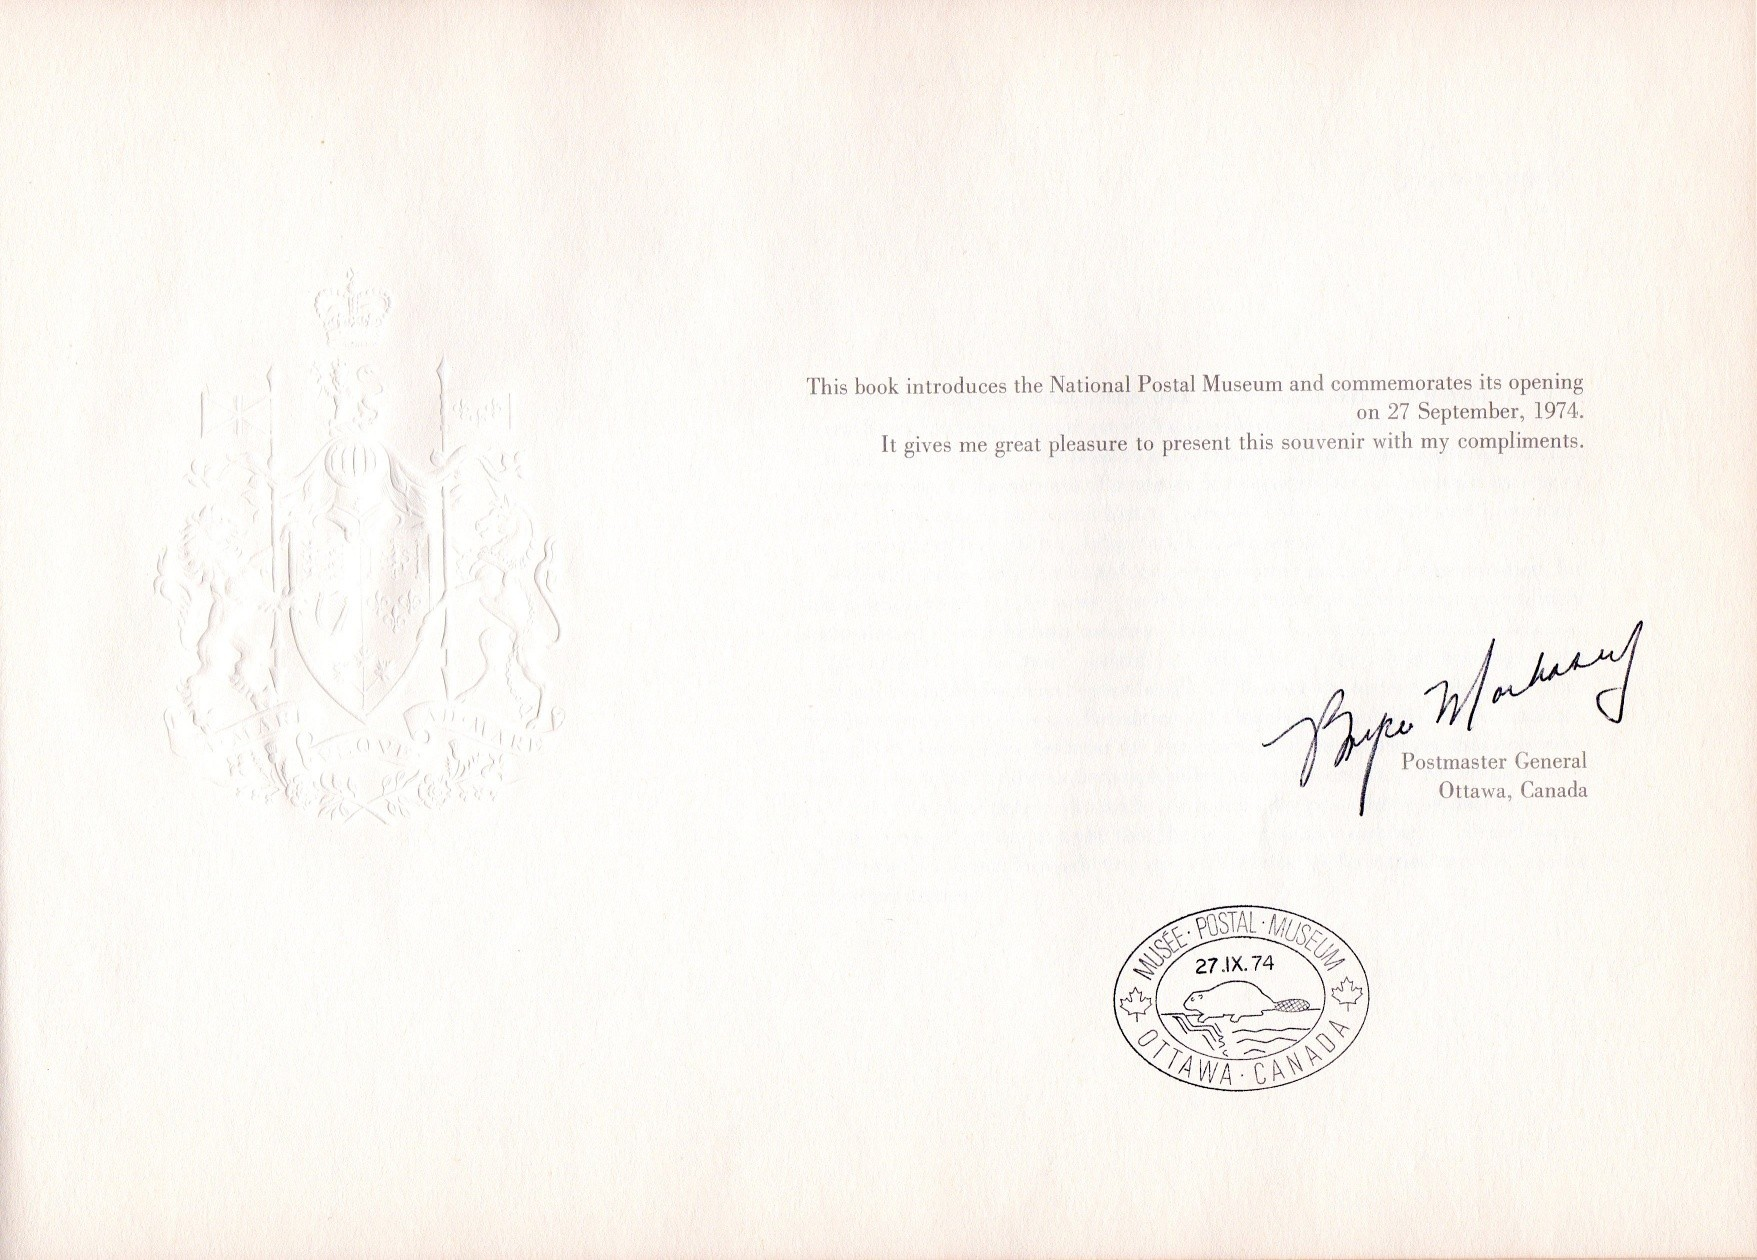 Canada NPM Embossed Signature Page 01.jpg